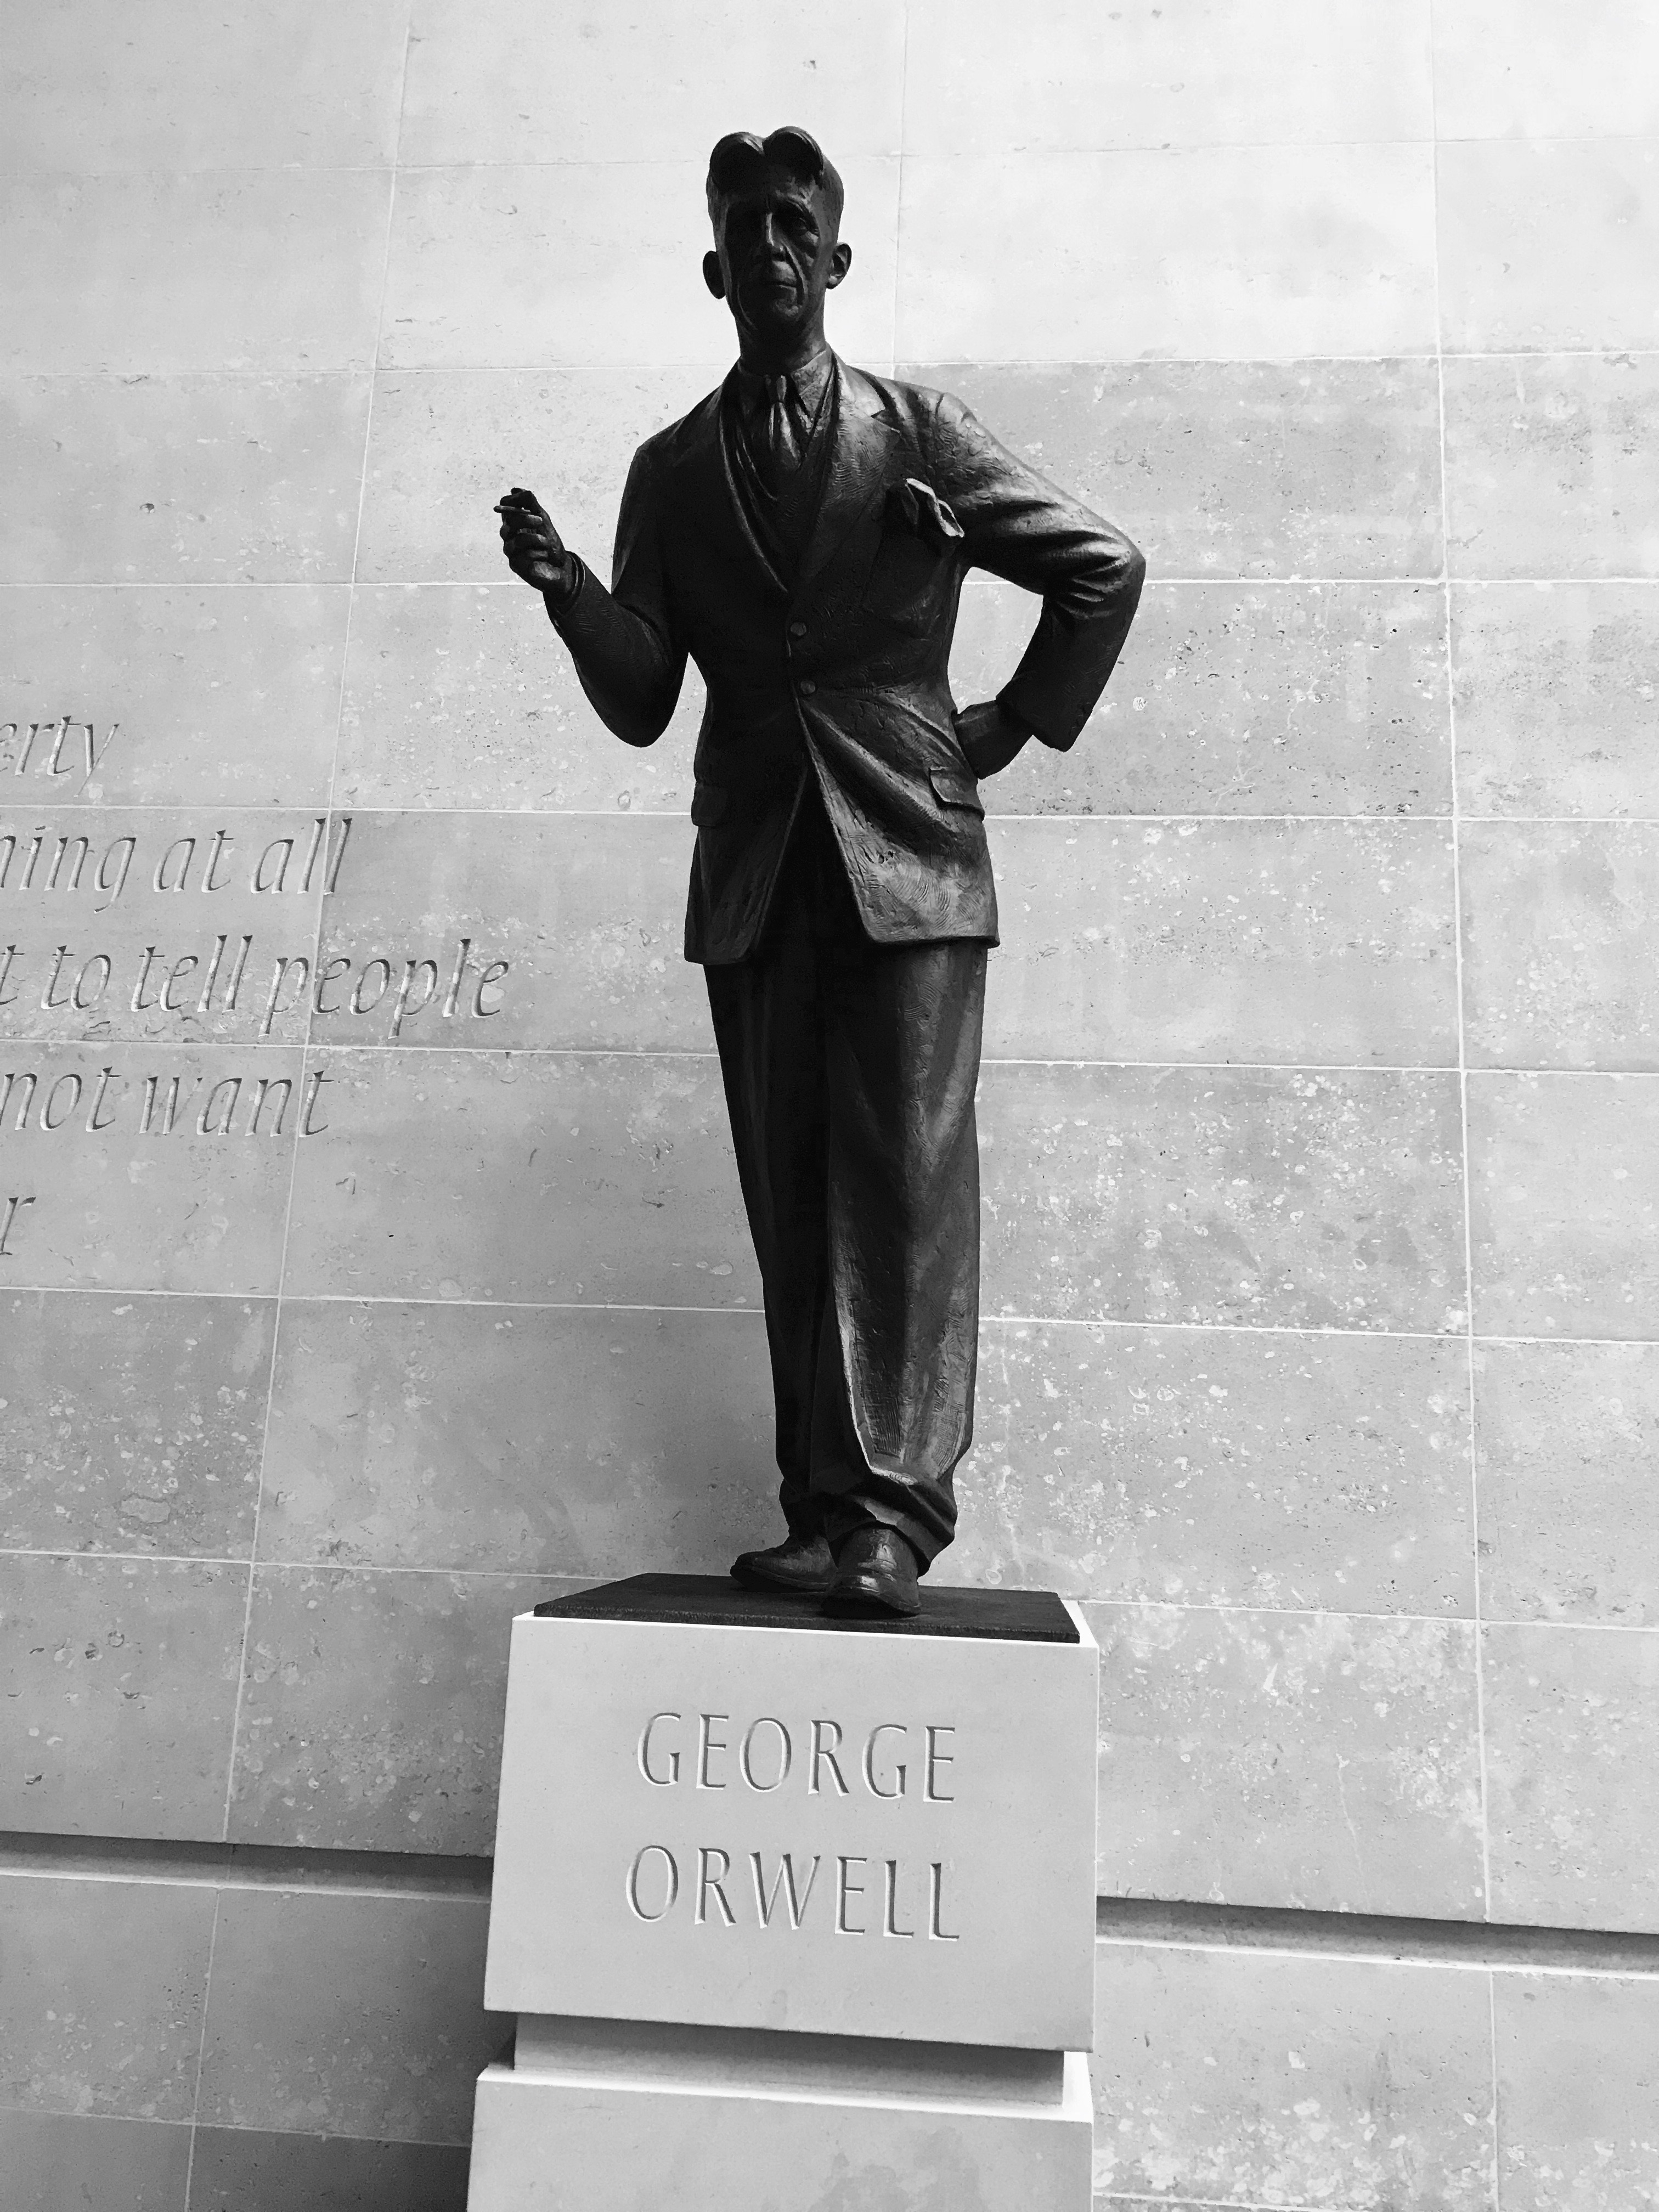 Statue Of George Orwell Outside Broadcasting House Headquarters Of The Bbc A Defence Of Free Speech In An Open Society The Wall Behind The Statue Is